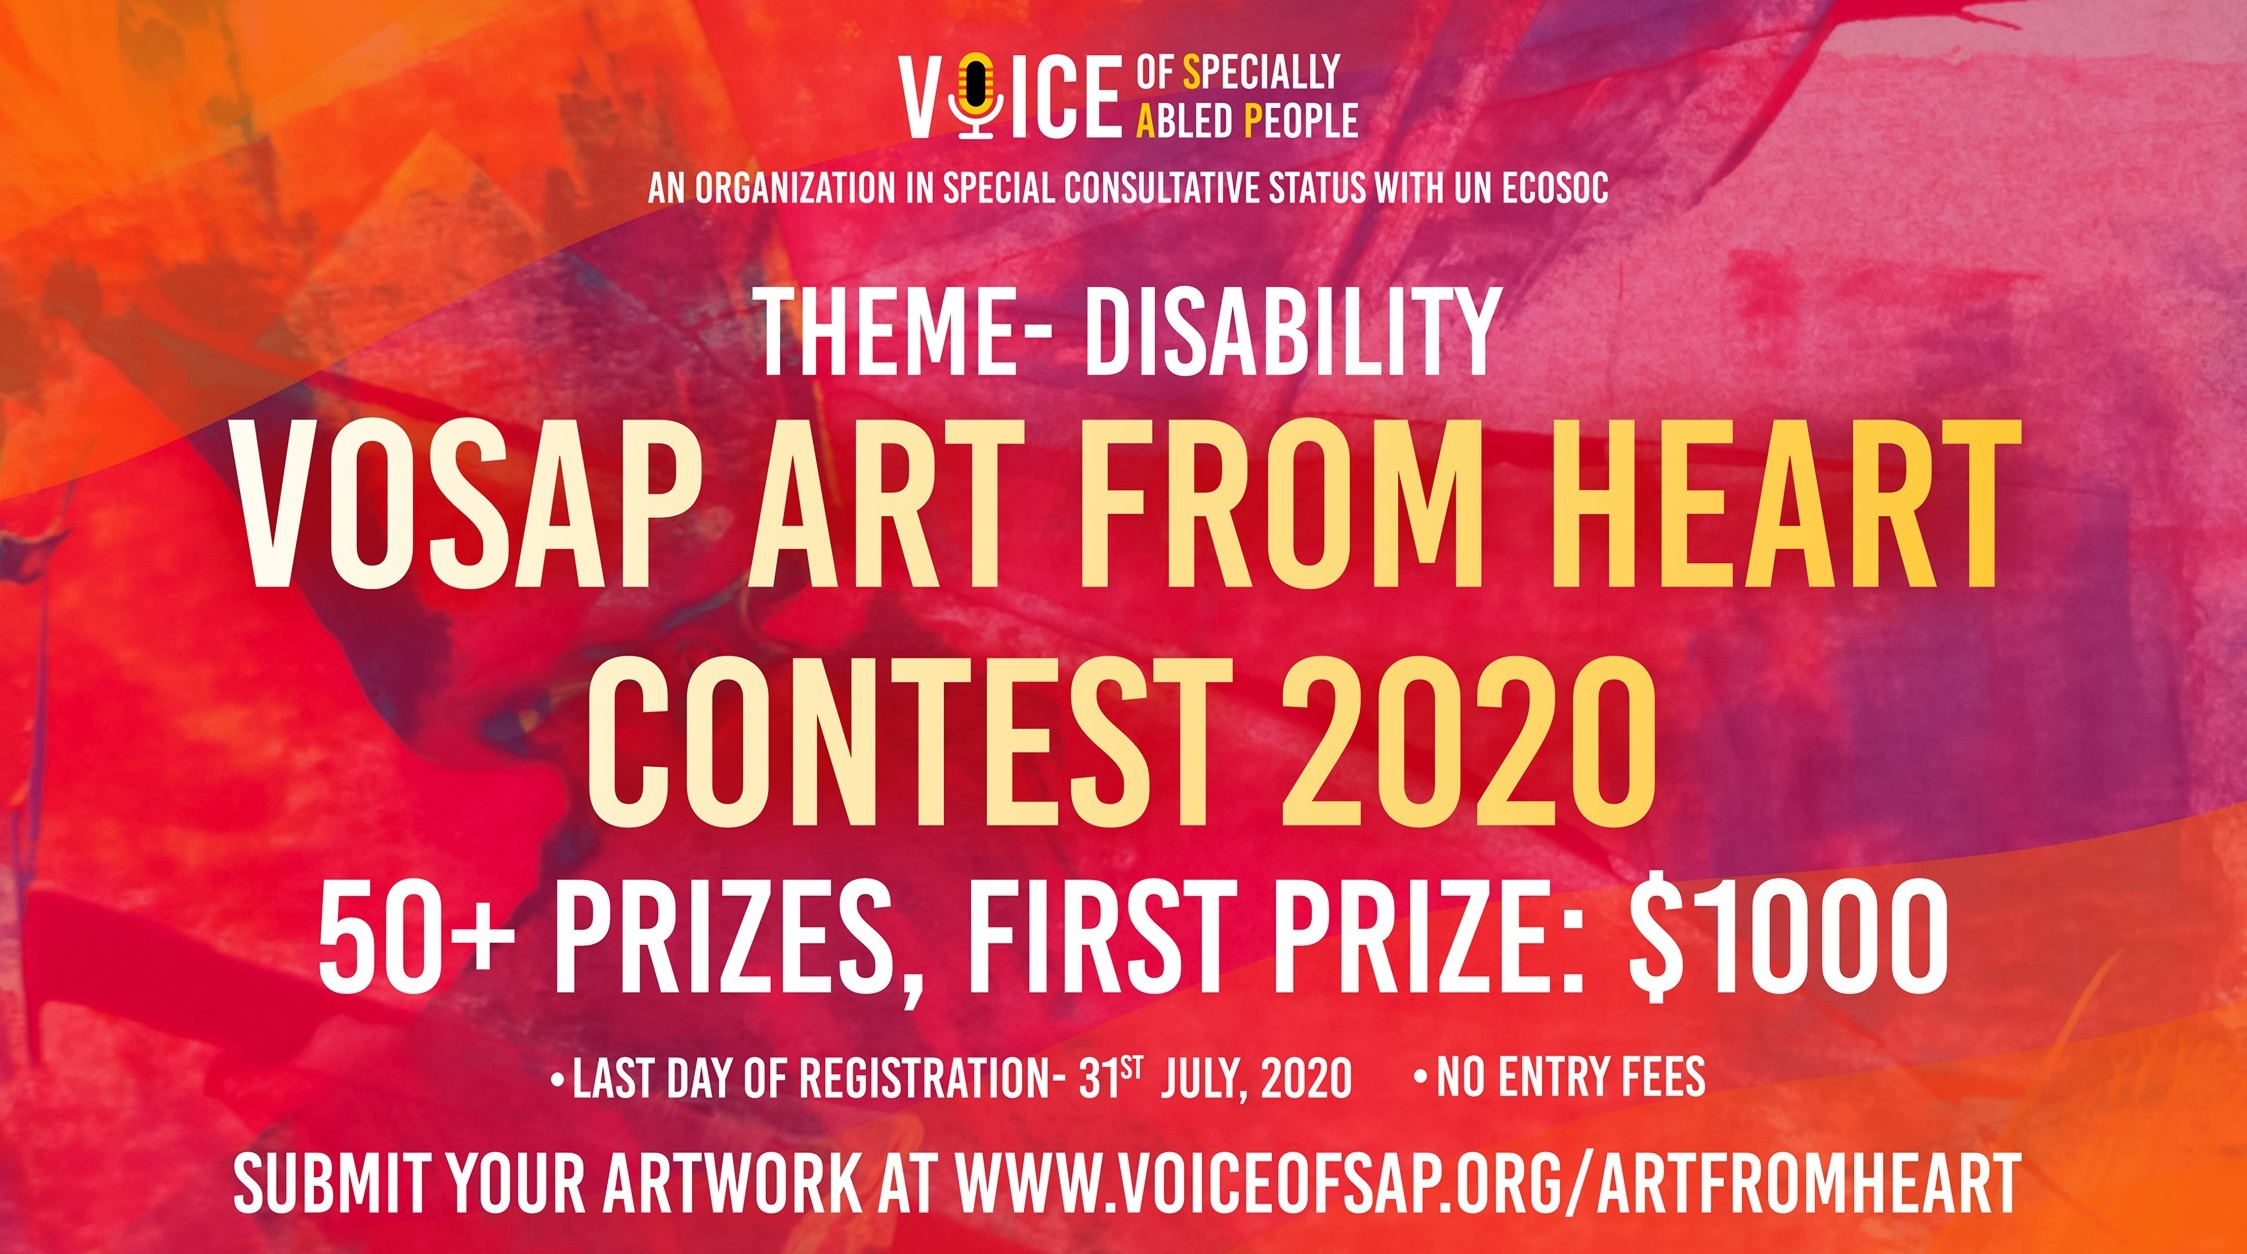 VOSAP Art from Heart Contest 2020